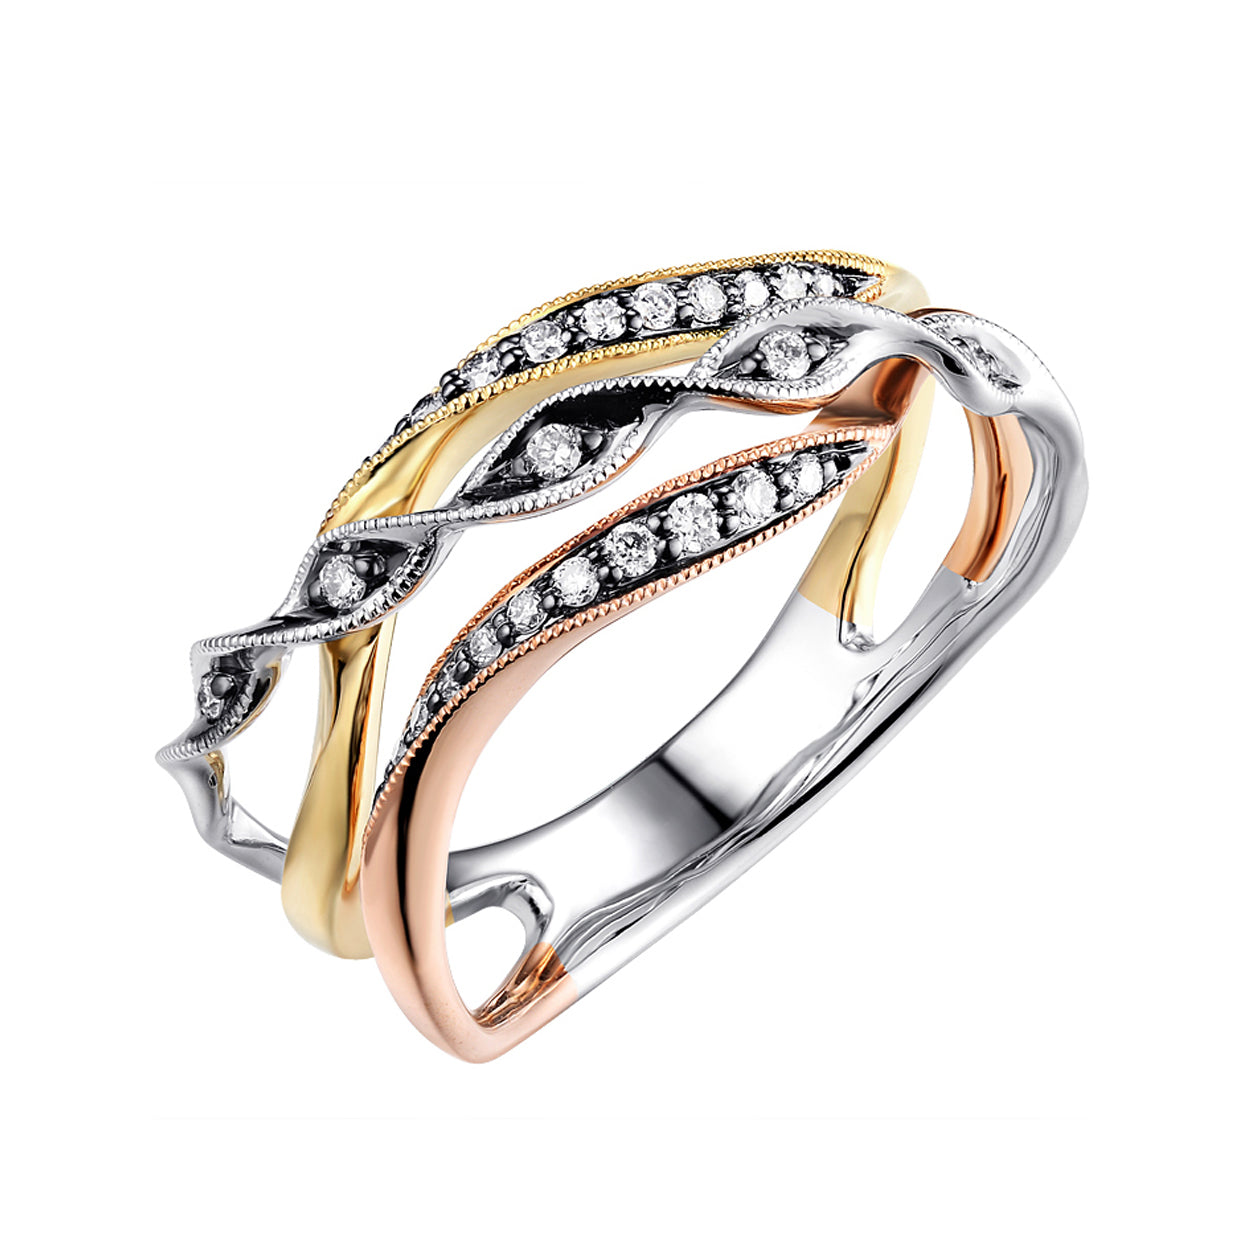 rings gold price diamond couture pave fashion productdetails image product buy ring pages rose